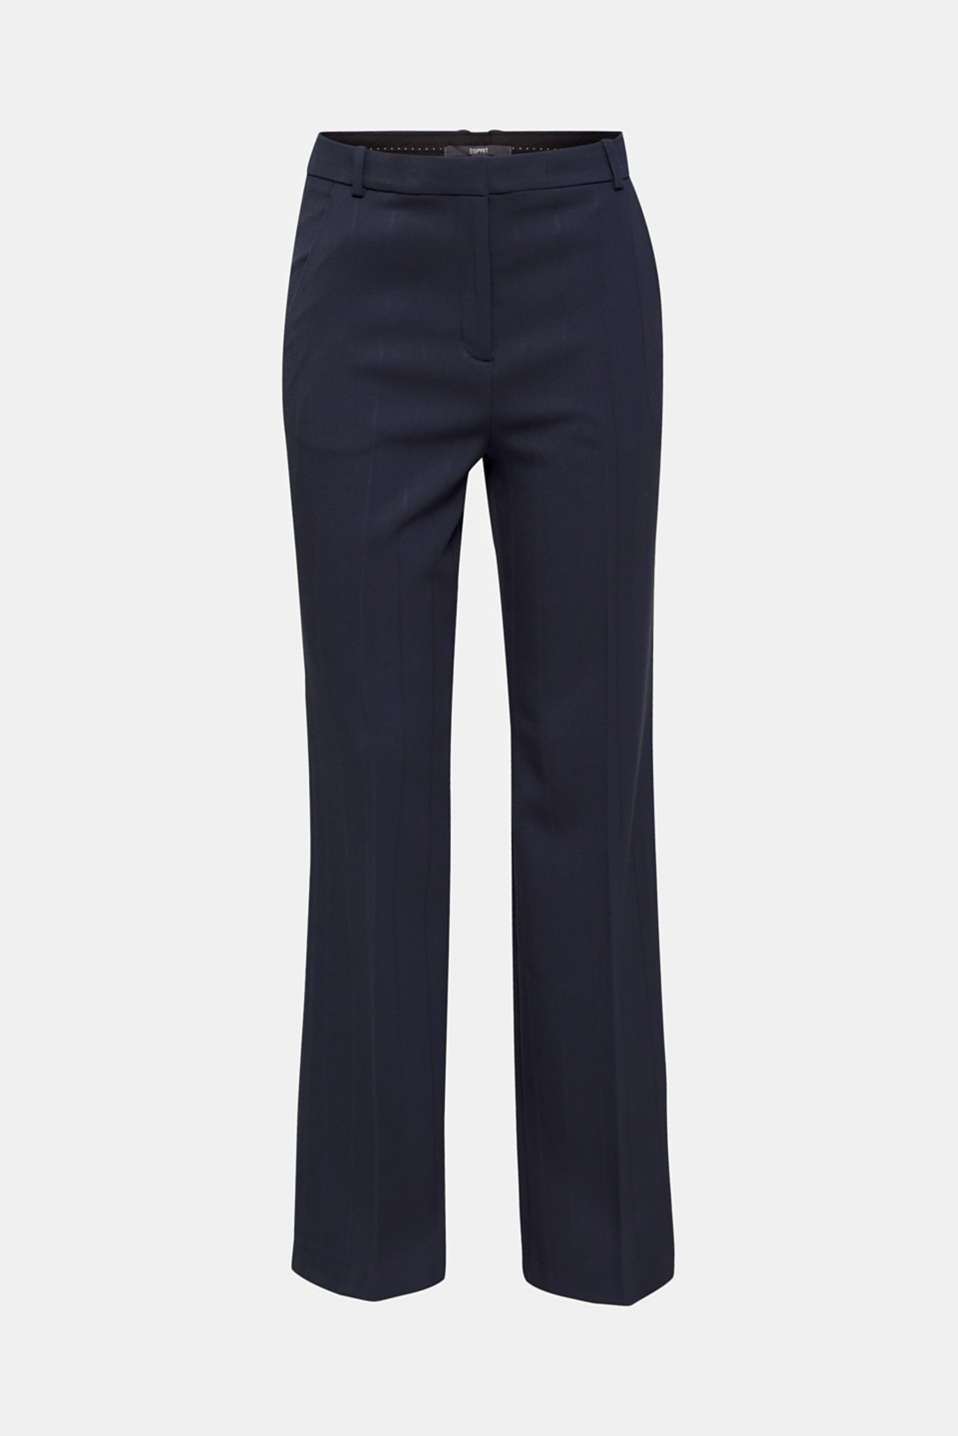 HERRINGBONE Mix + Match stretch trousers, NAVY, detail image number 7